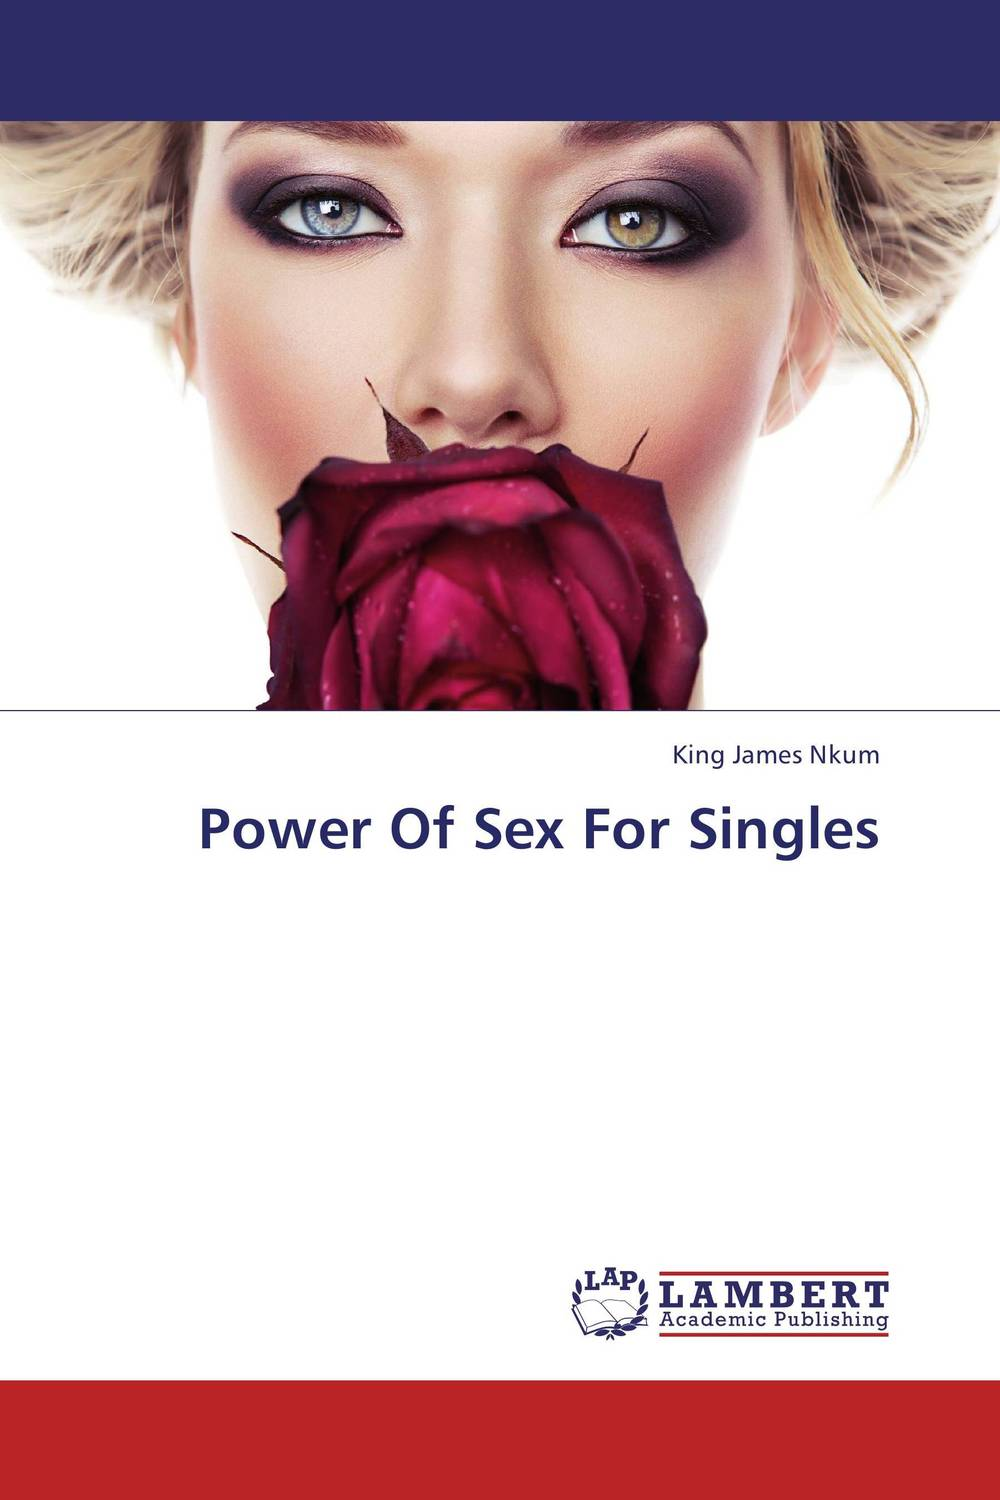 Power Of Sex For Singles easy love sucking clitoris nipple sucker g spot vibrator licking tongue oral sex toys for woman adult sex products